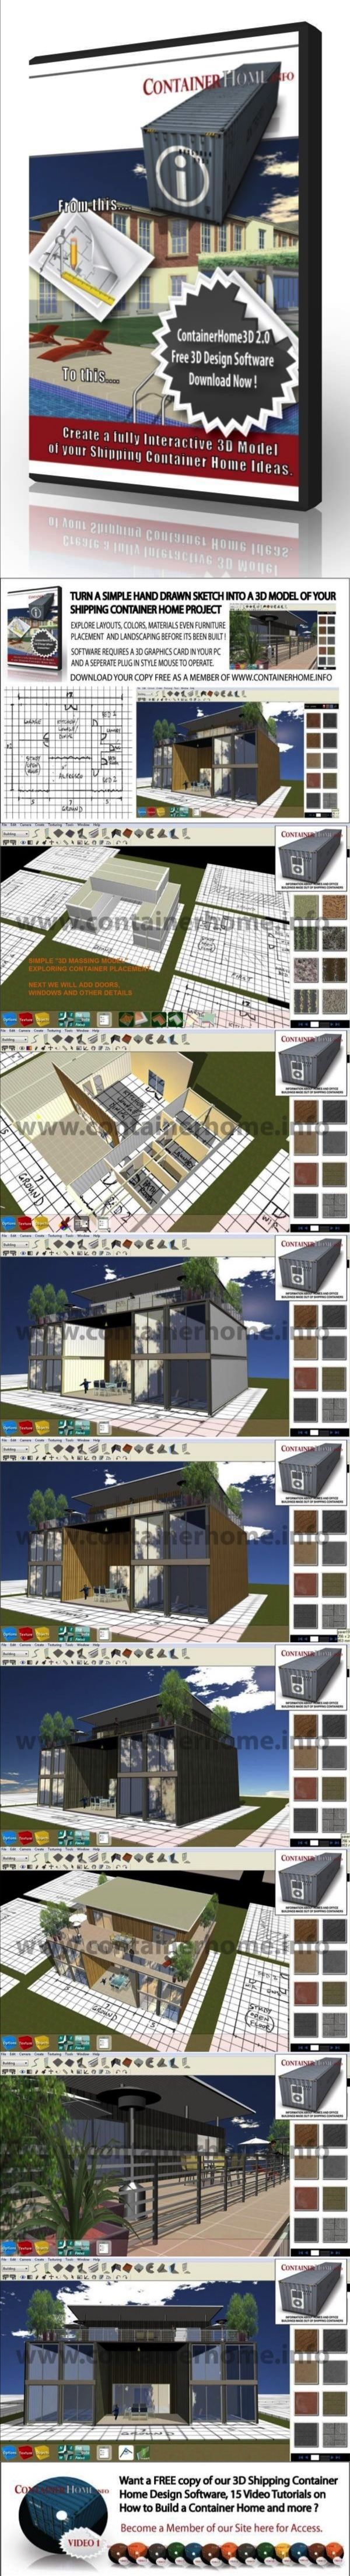 interior design drawing programs - 1000+ ideas about Free Interior Design Software on Pinterest ...